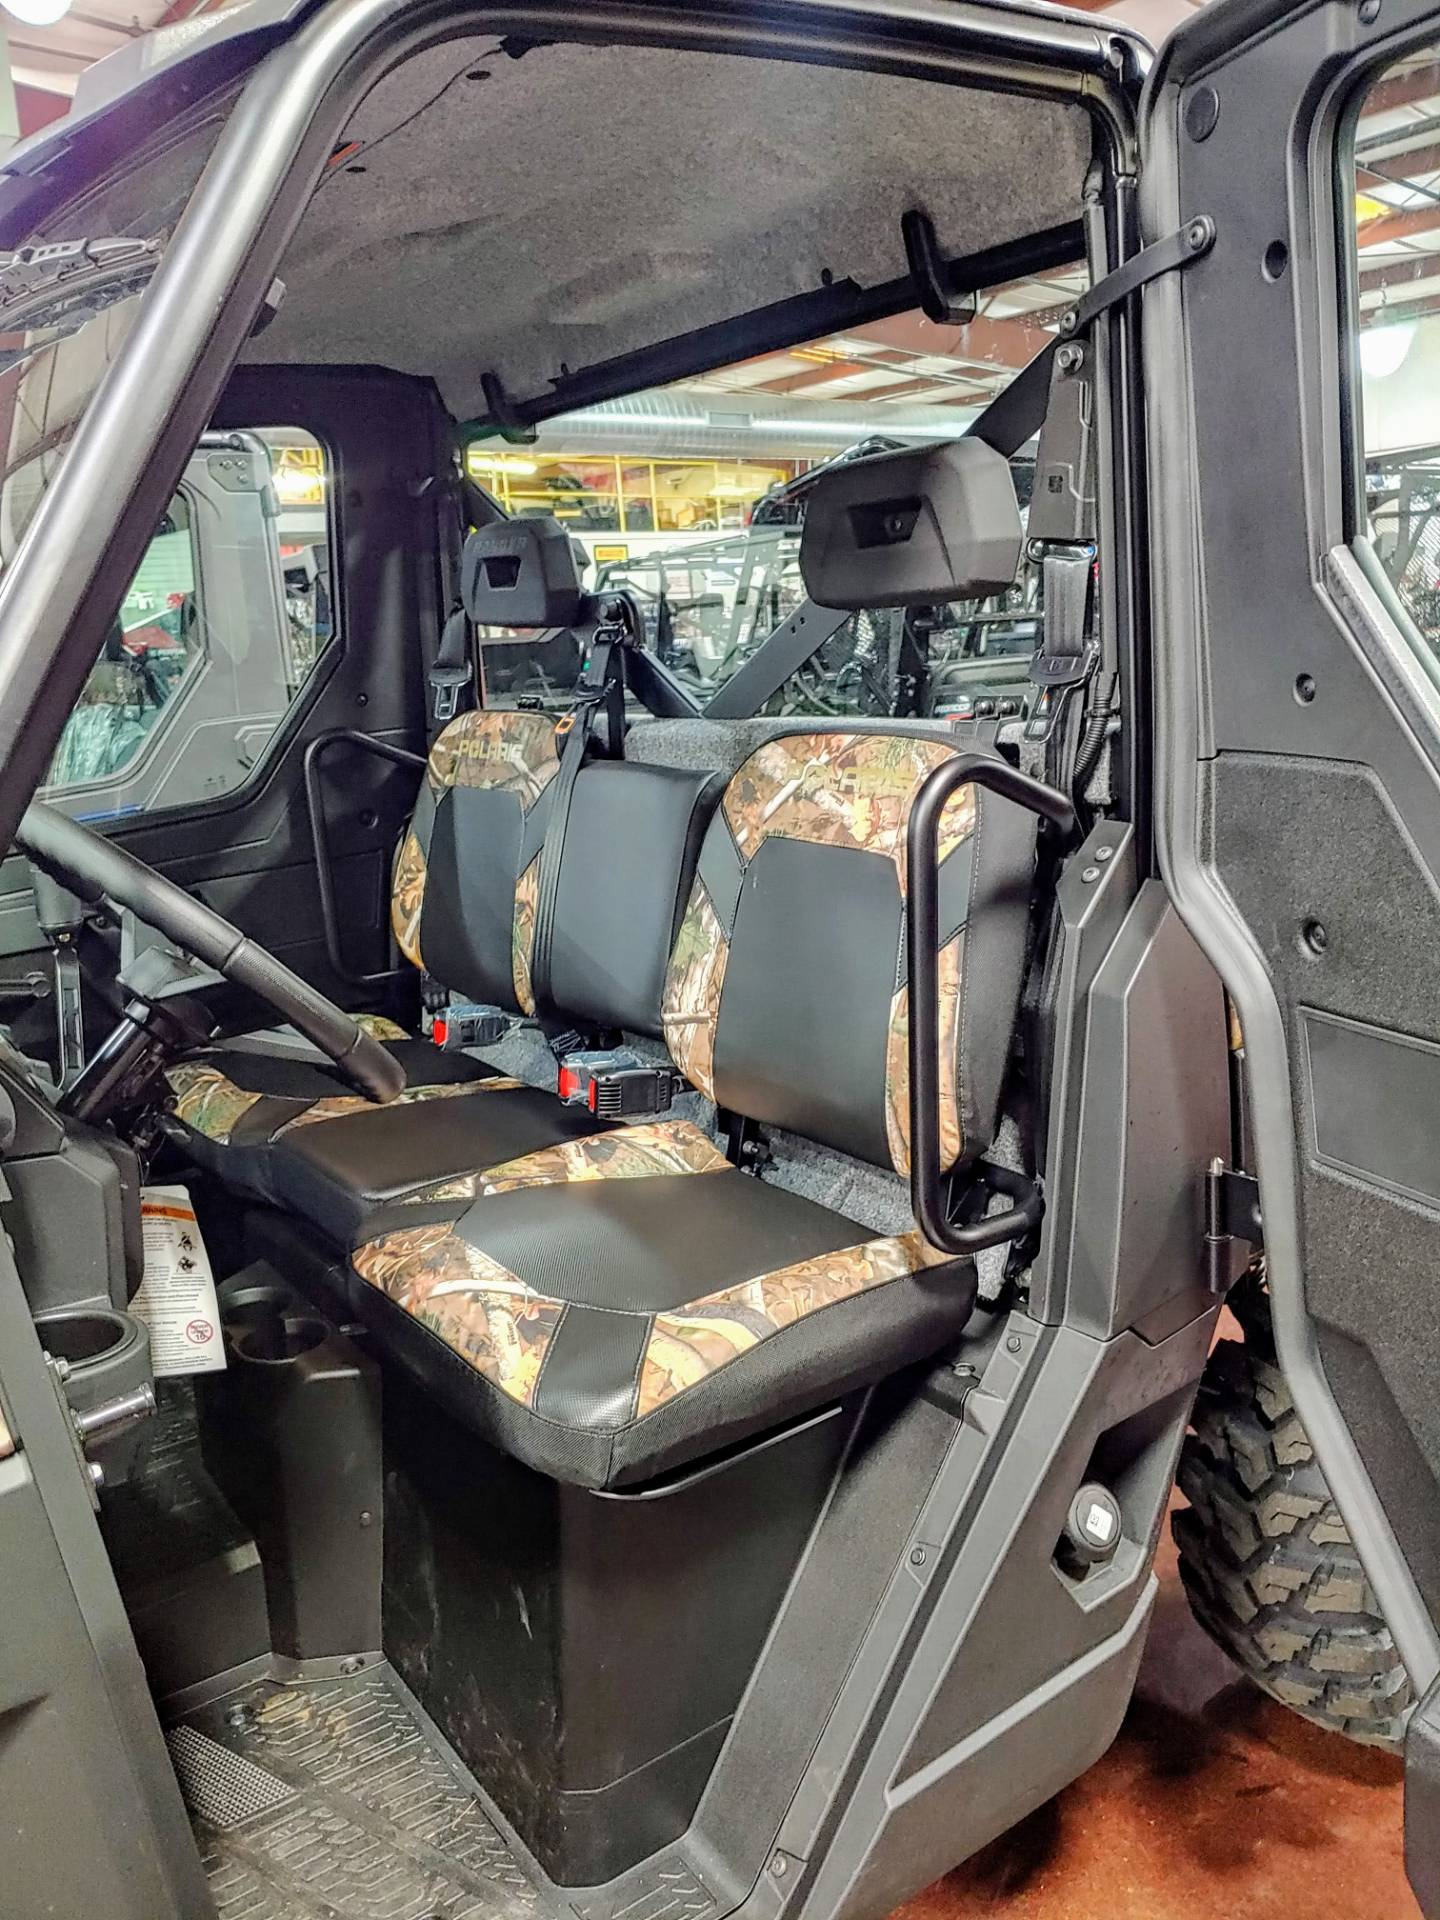 2019 Polaris Ranger XP 1000 EPS Northstar Edition Ride Command in Statesville, North Carolina - Photo 7